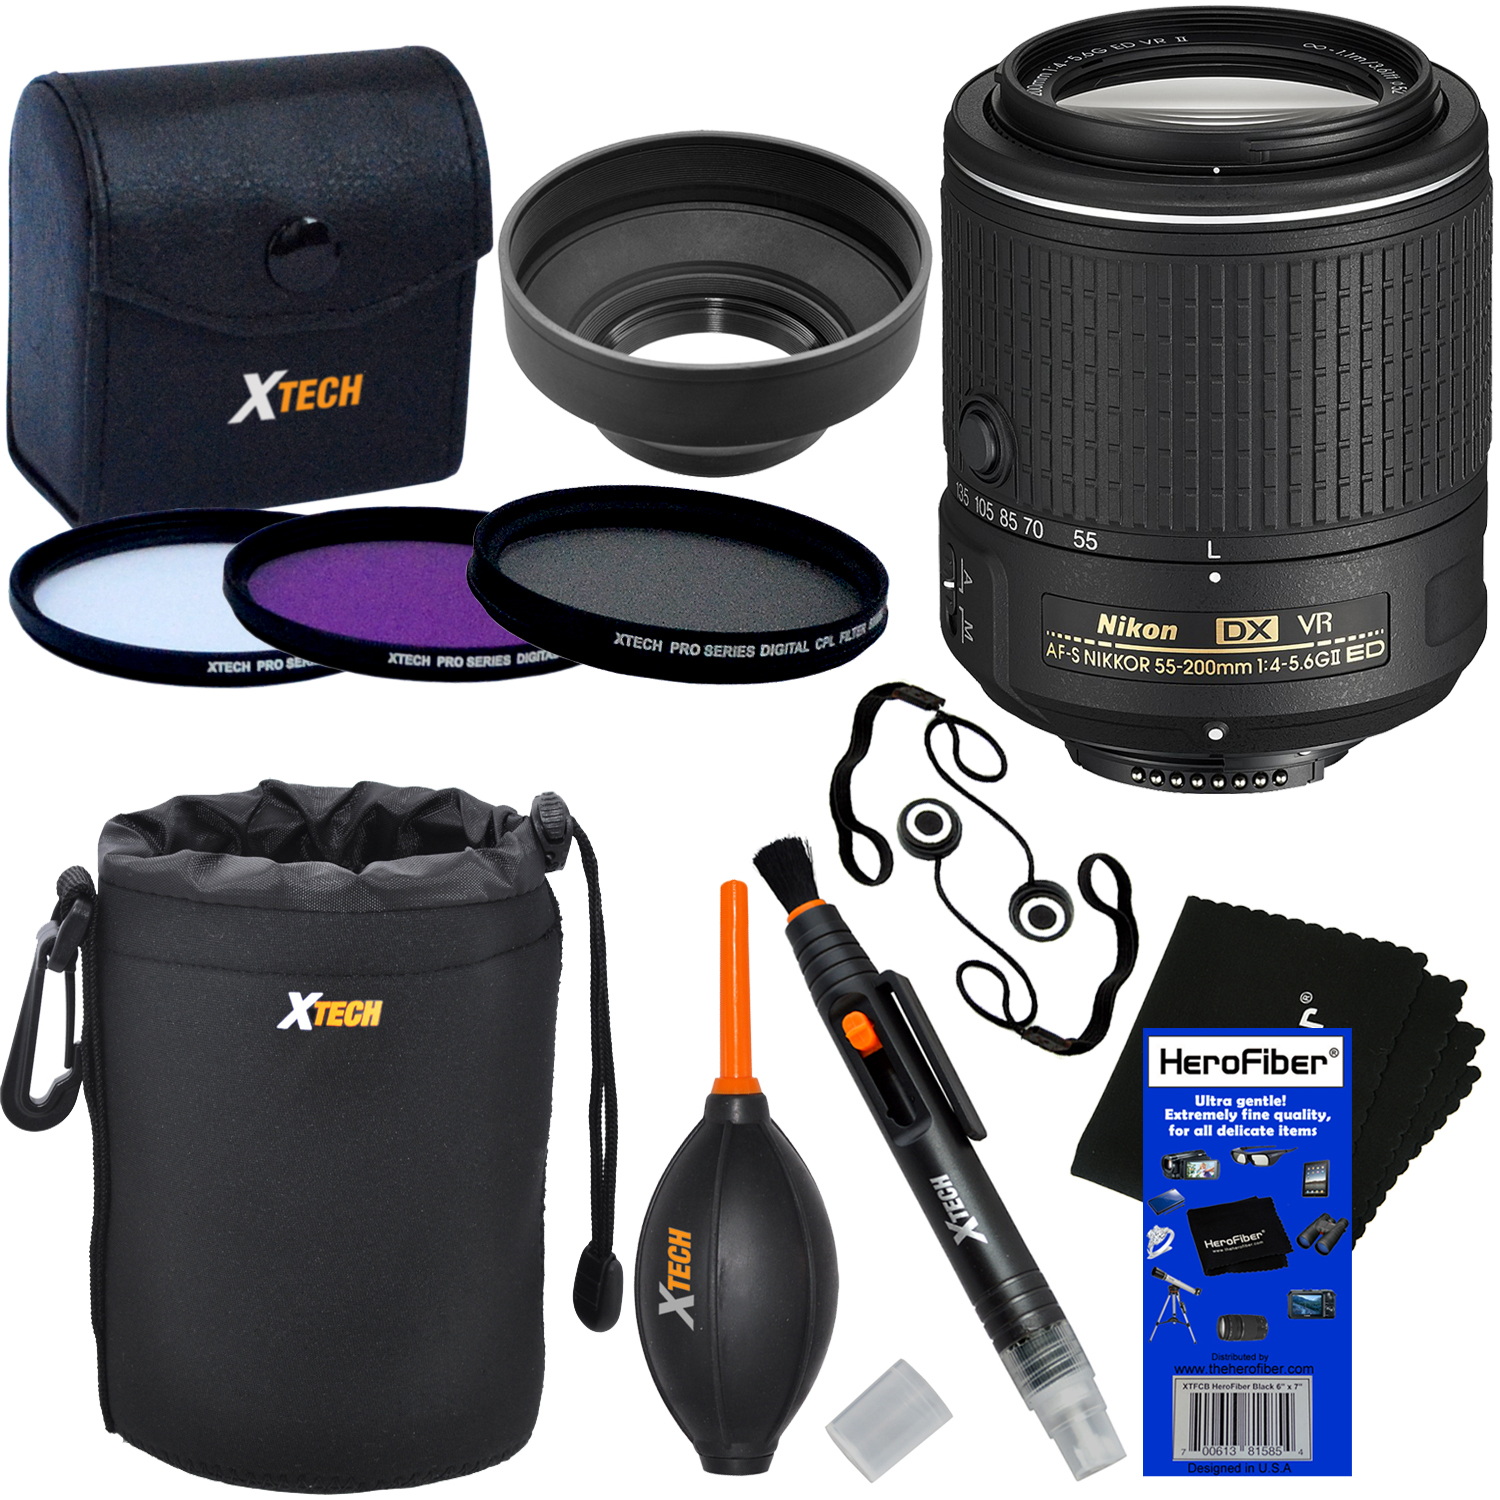 Nikon AF-S DX NIKKOR 55-200mm f/4-5.6G ED VR II Zoom Lens for Nikon DSLR Cameras + 3pc Filter Kit (UV,FL-D,CPL) + 8pc Accessory Kit w/ HeroFiber Cleaning Cloth